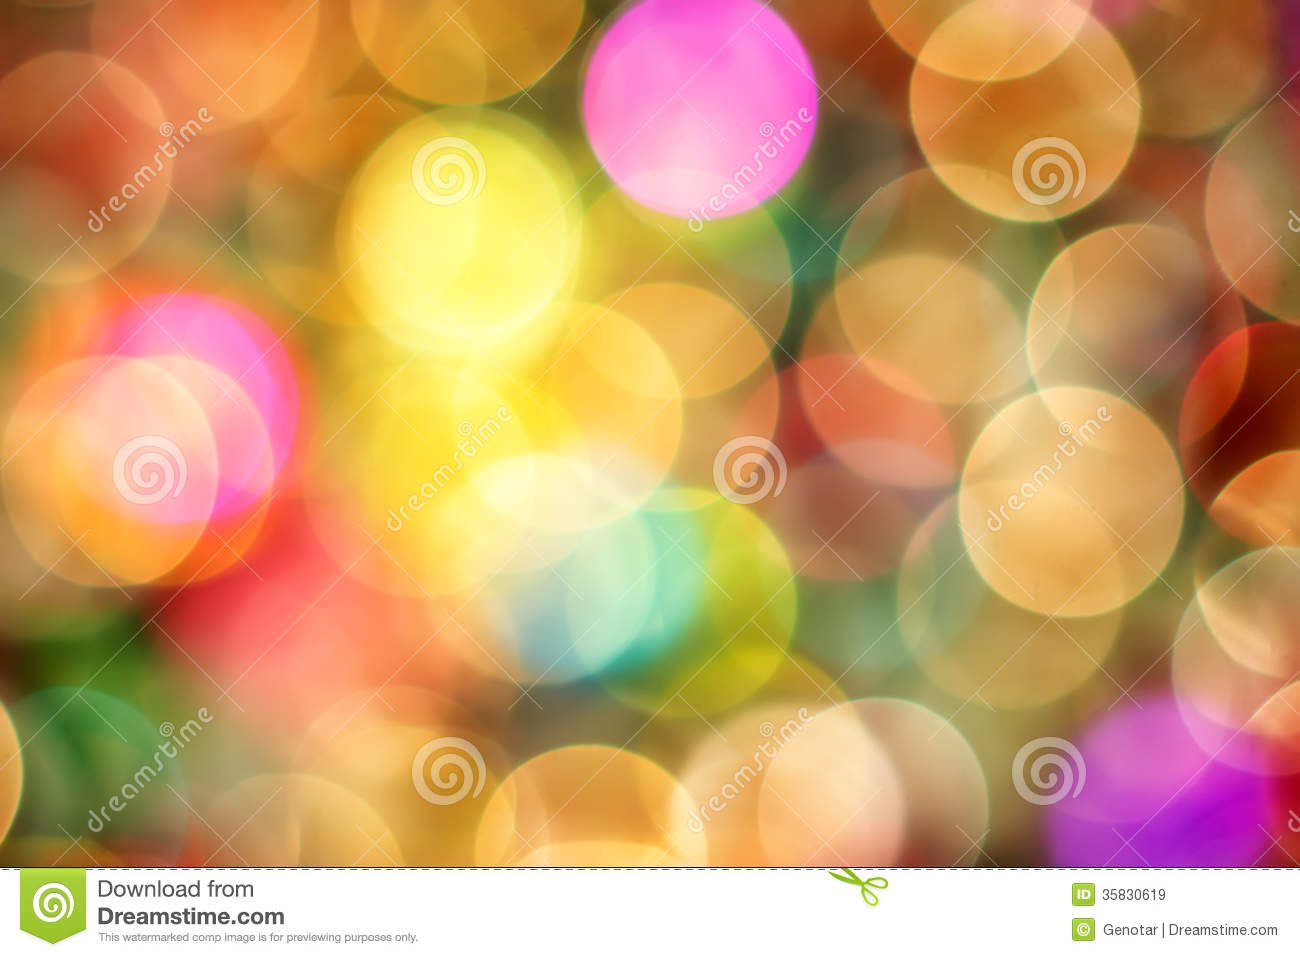 Background Designs For Projects Christmas Bokeh Abstra...